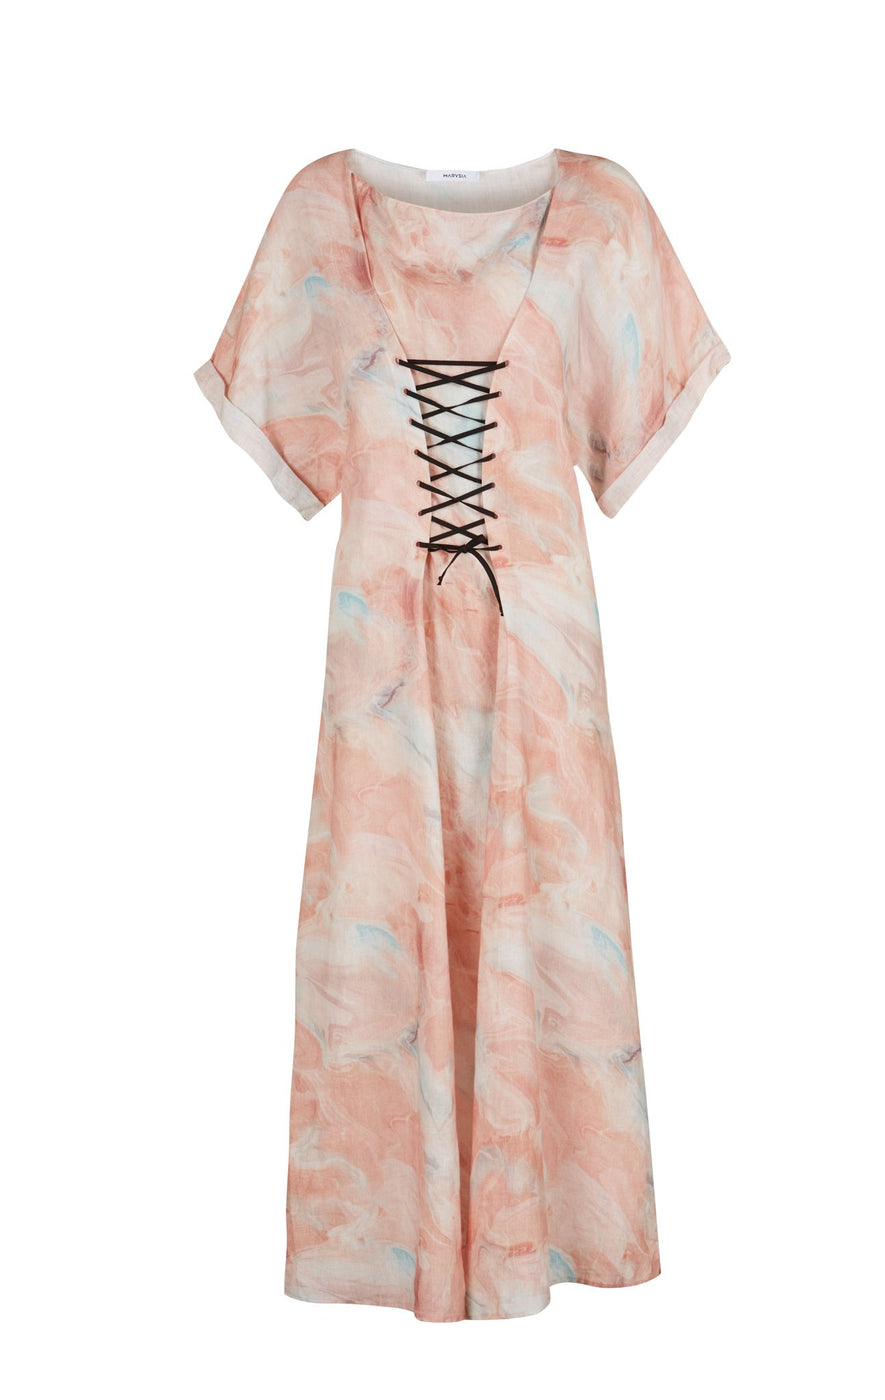 Sonora Dress in Antelope Marble Print